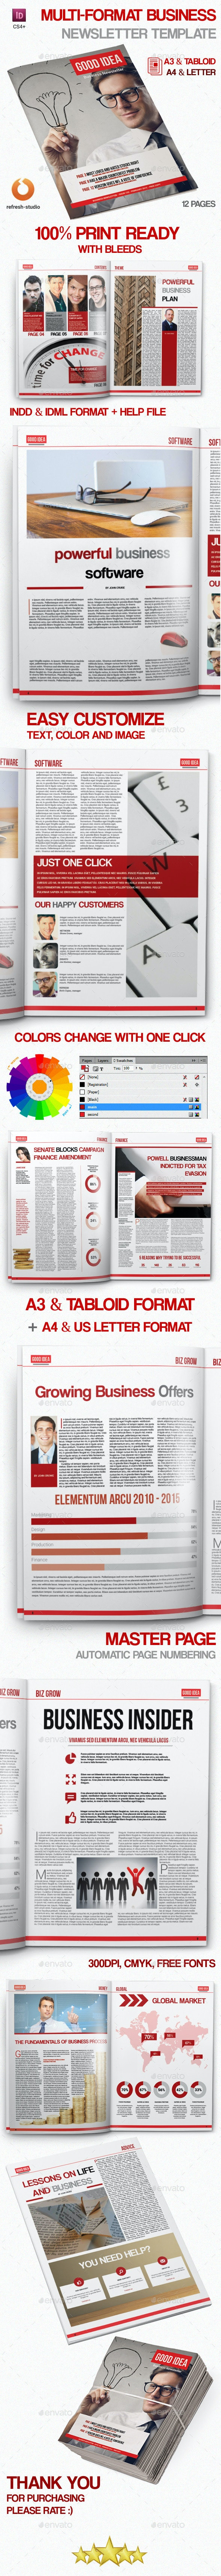 Multi-format Business Newsletter Template - Newsletters Print Templates